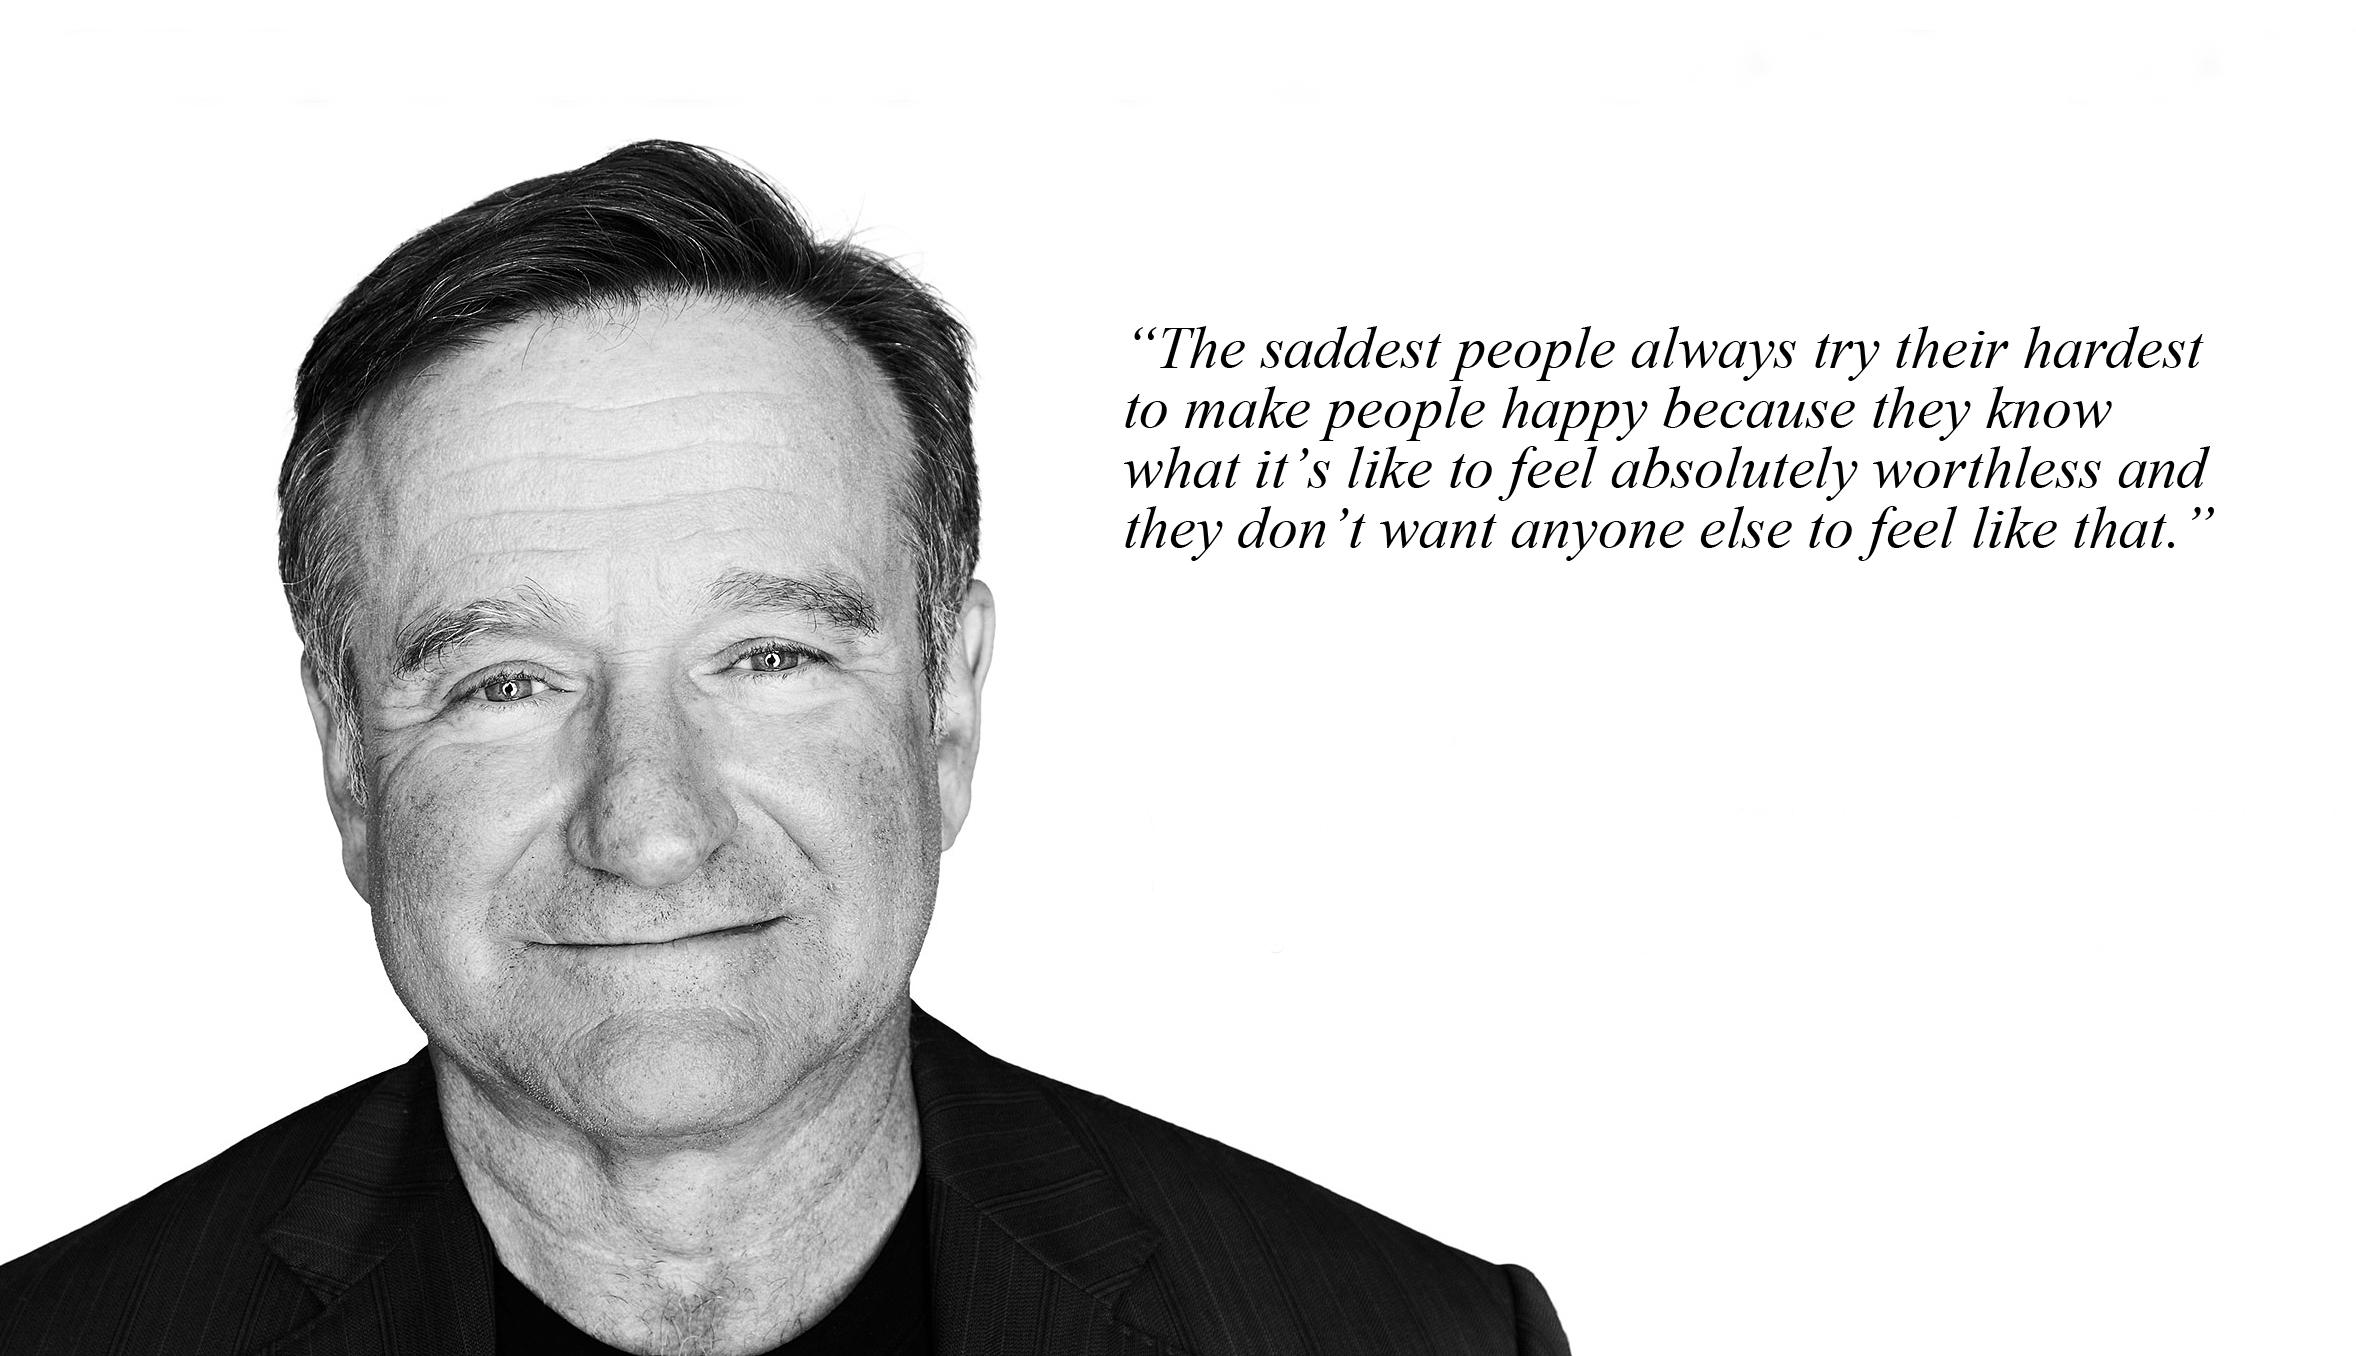 """The saddest people always try their hardest to make people happy because they know what it's like to feel absolutely worthless and they don't want anyone else to feel like that."" – Robin Williams [2356 x 1356]"